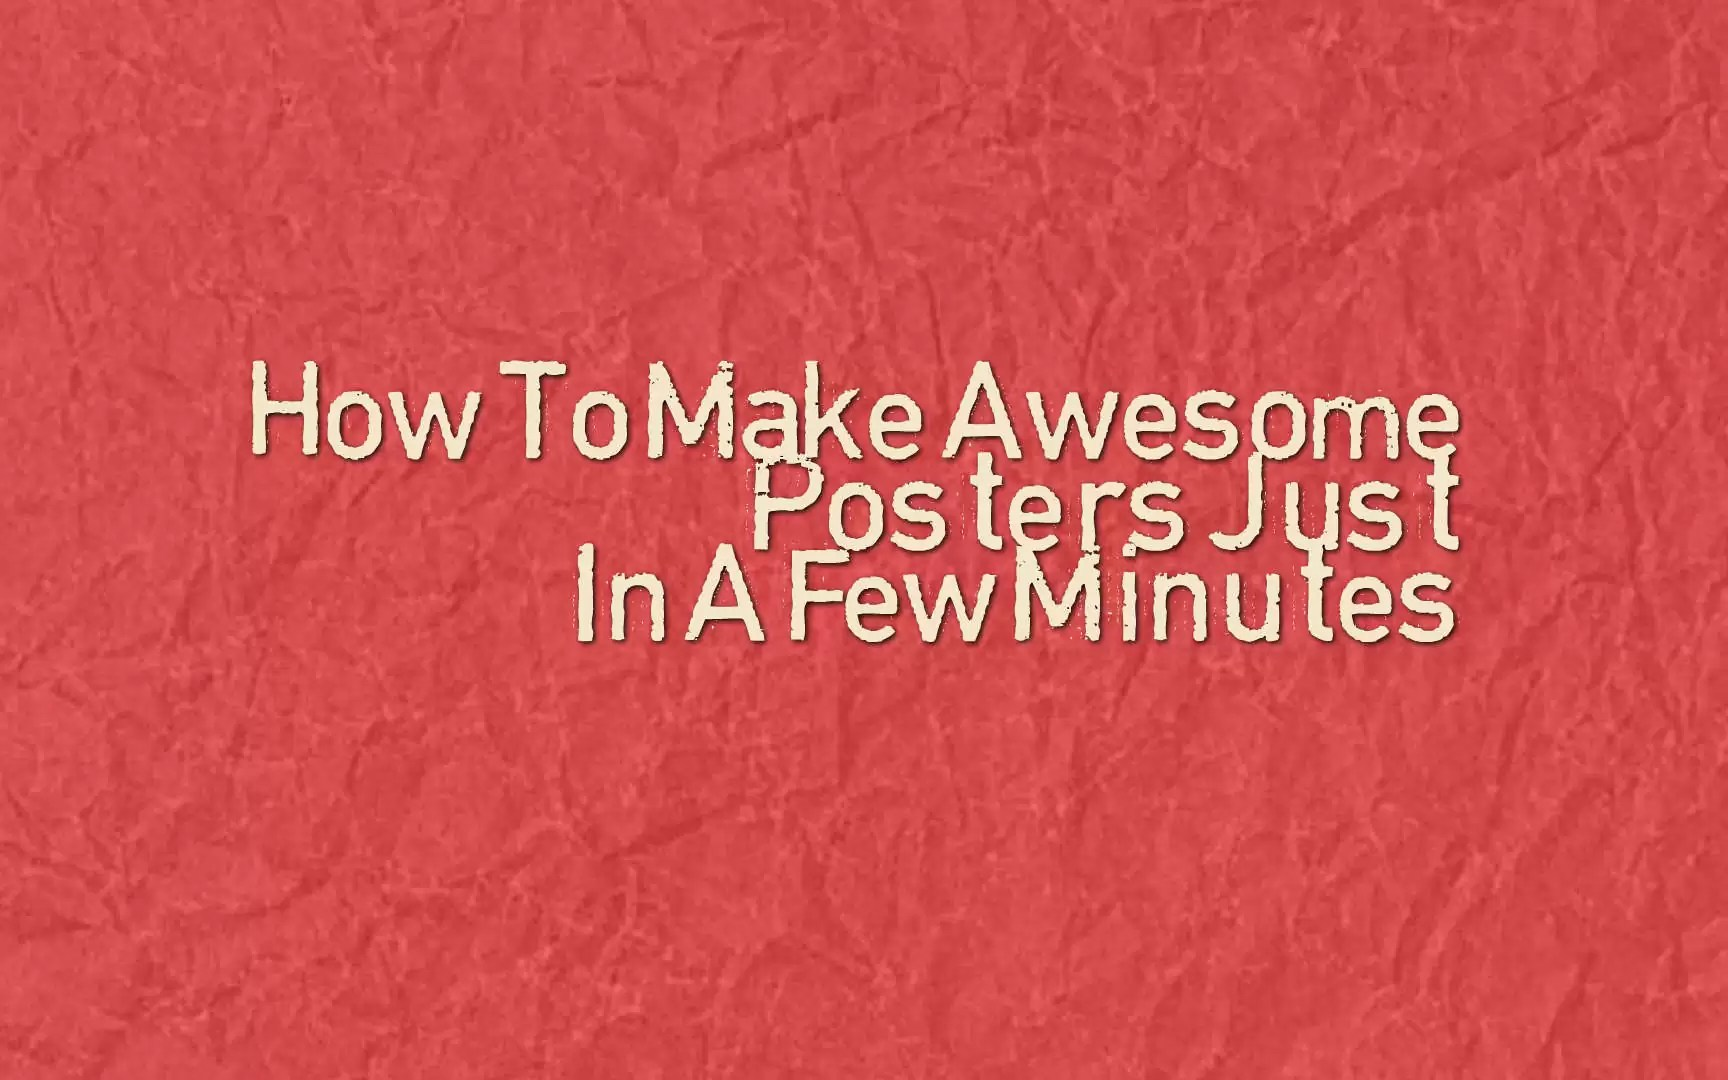 How To Make Awesome Posters Just In A Few Minutes [DesignCap Review]